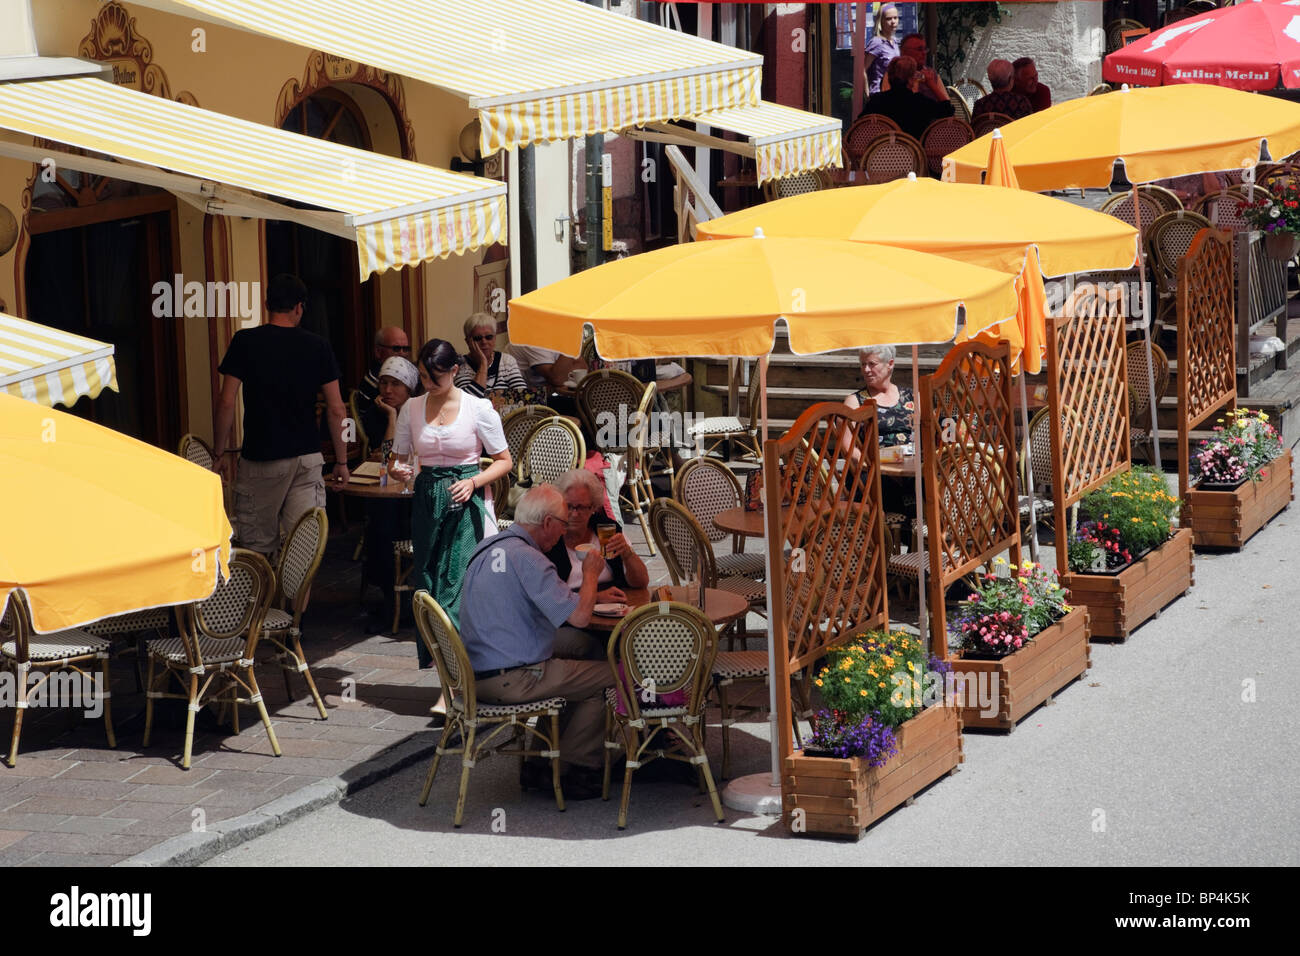 Pavement cafes with people dining outside in the old town. St Wolfgang, Salzkammergut, Upper Austria, Austria, Europe. - Stock Image